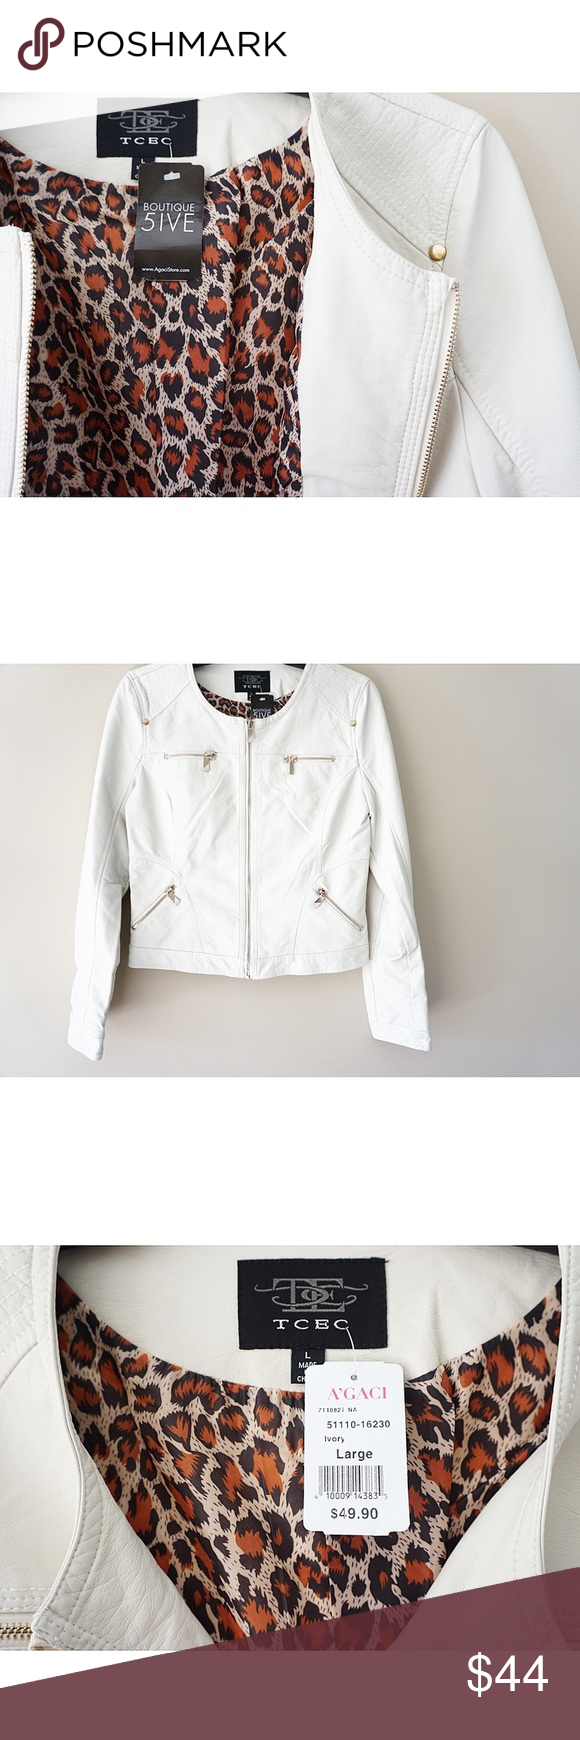 NWT Cream Leather Jacket Cream leather jacket, Leather